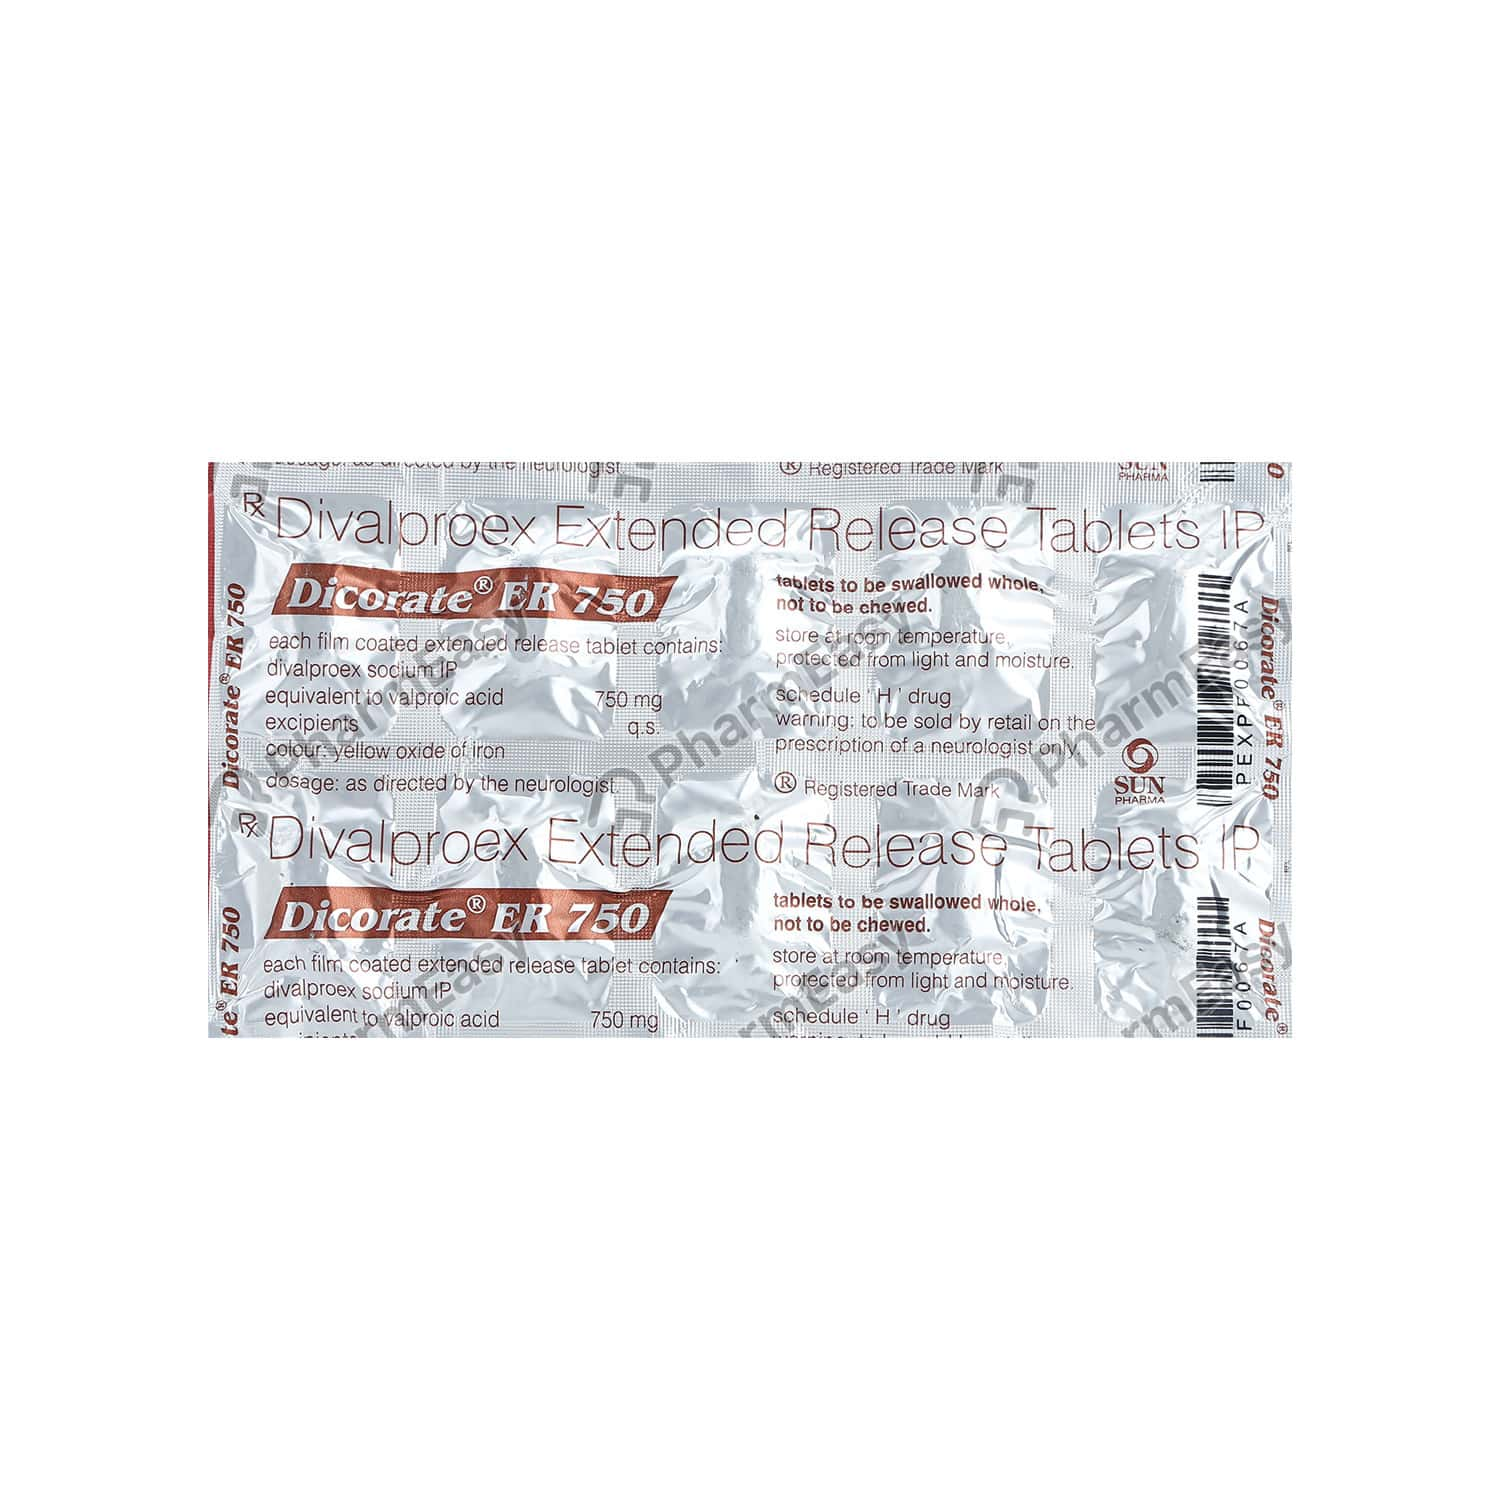 Dicorate Er 750mg Tablet